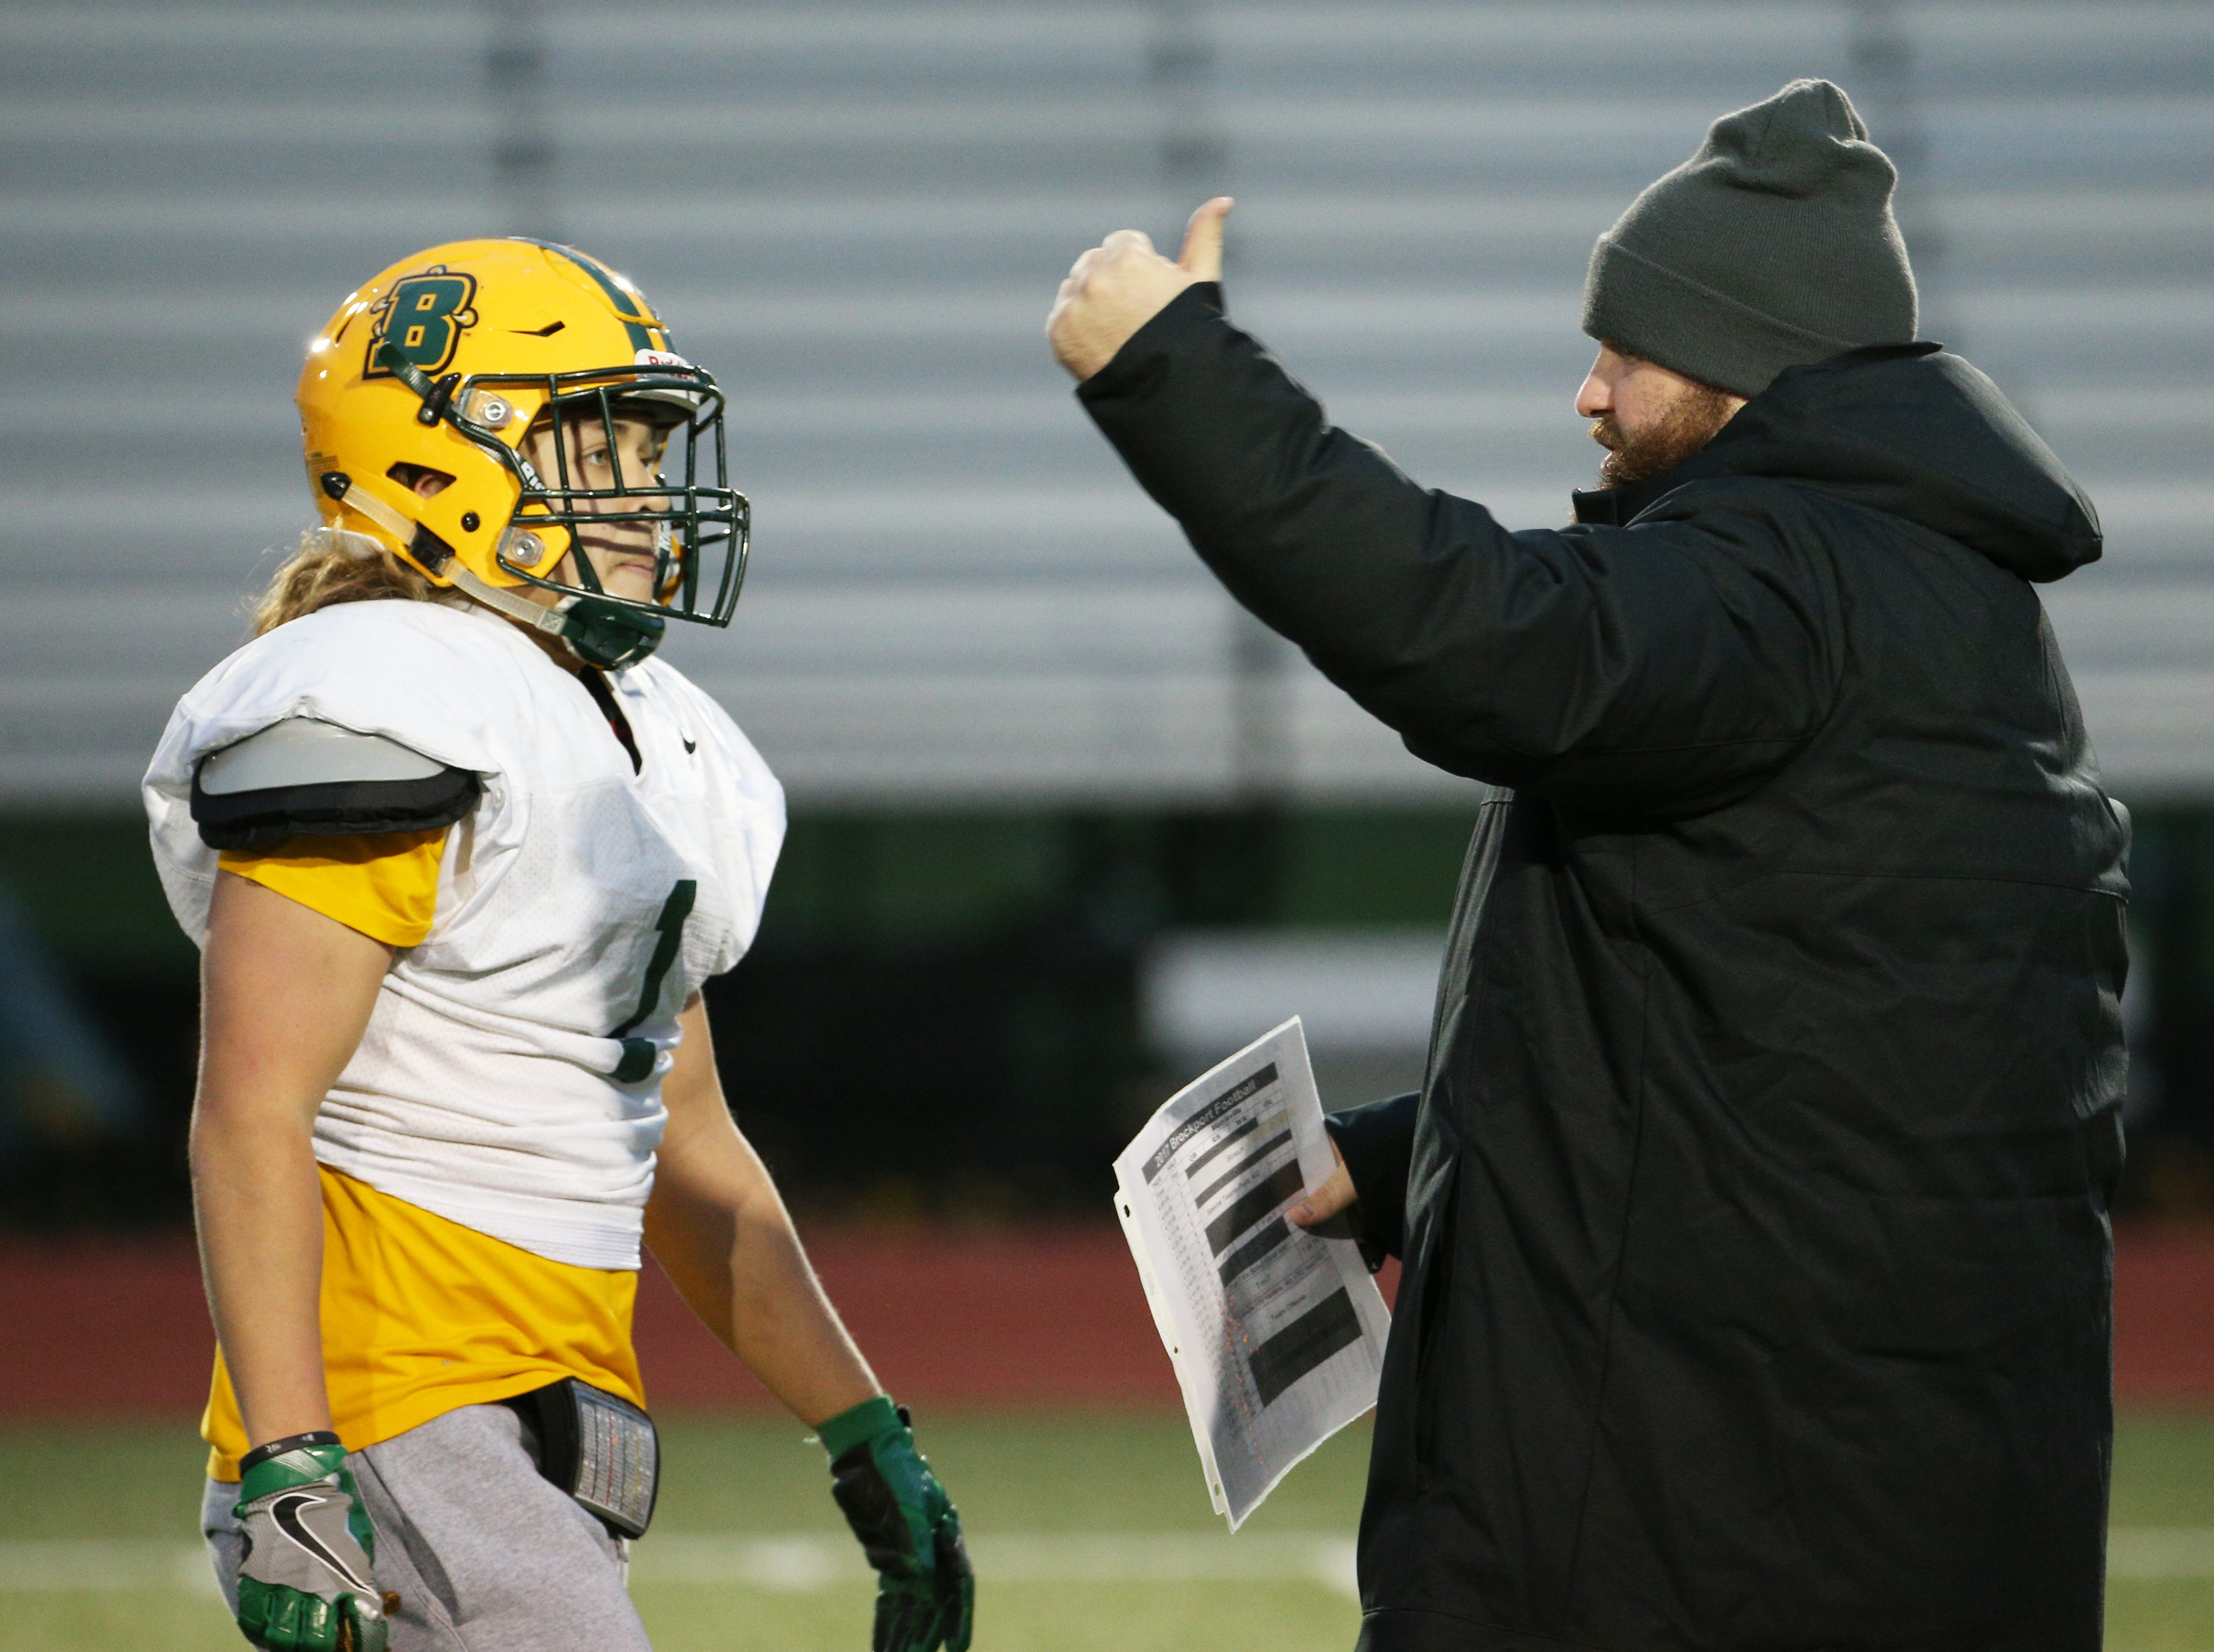 Senior running back Christian Hollister, left, of Perry, talks with assistant coach Justin Dueppengiesser at Brockport football practice.